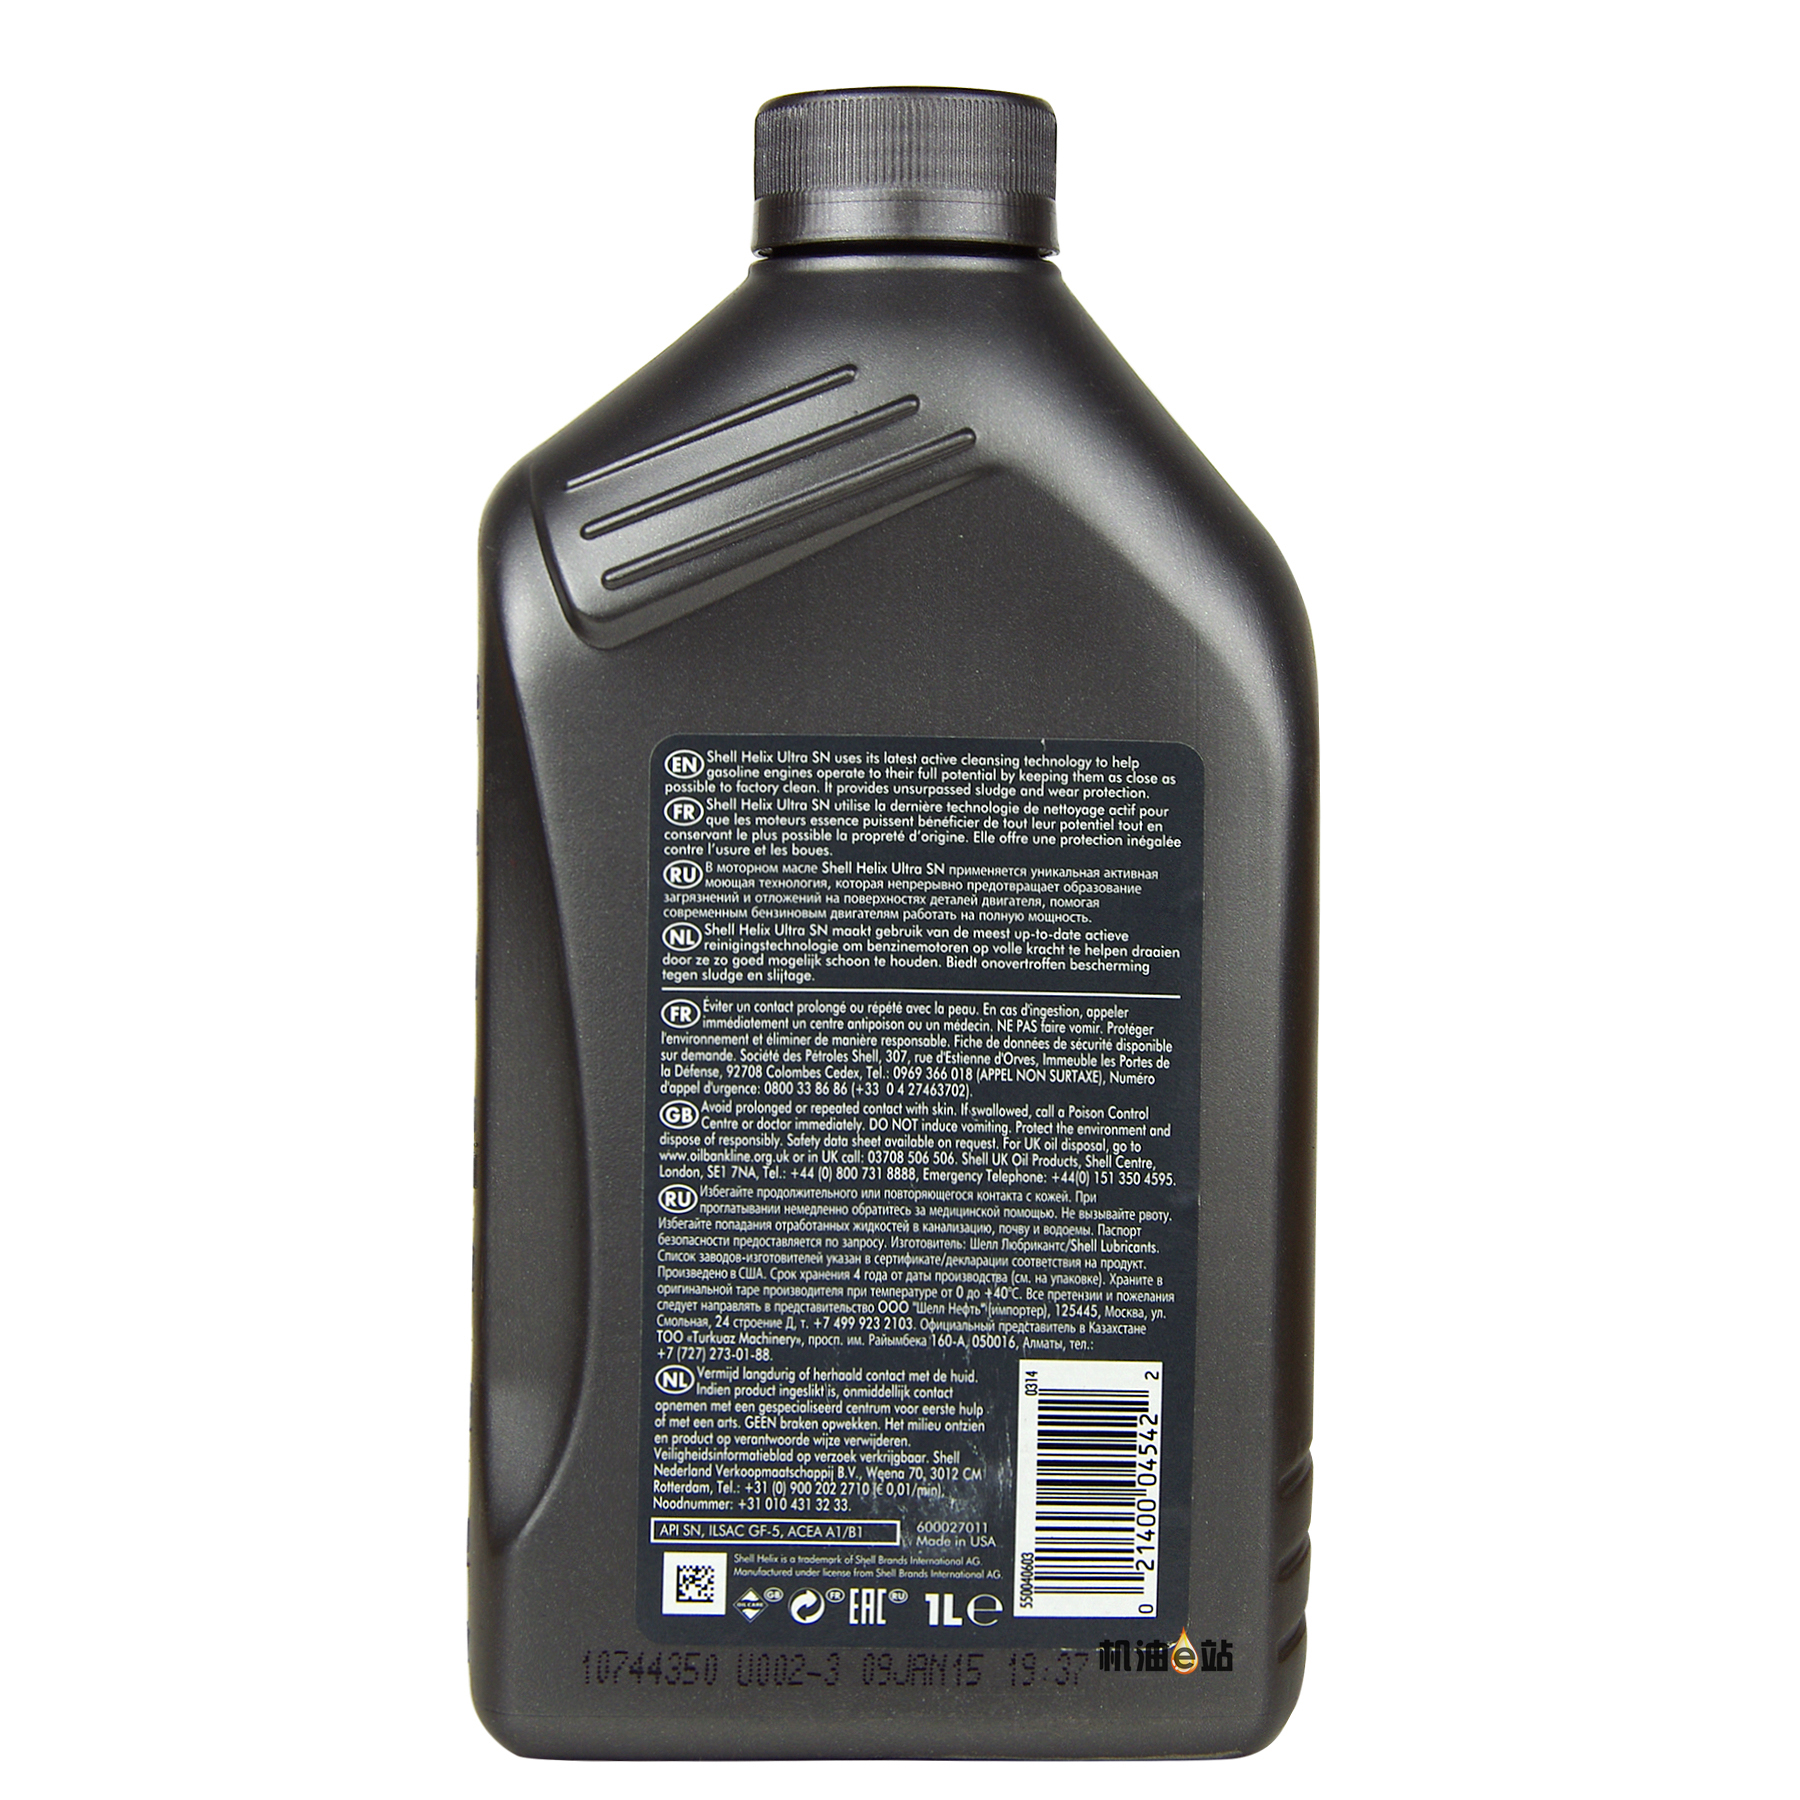 【Oil Town】 Shell imported from Germany ultra-pure ultra-pure synthetic oil 0W-20 API / SN